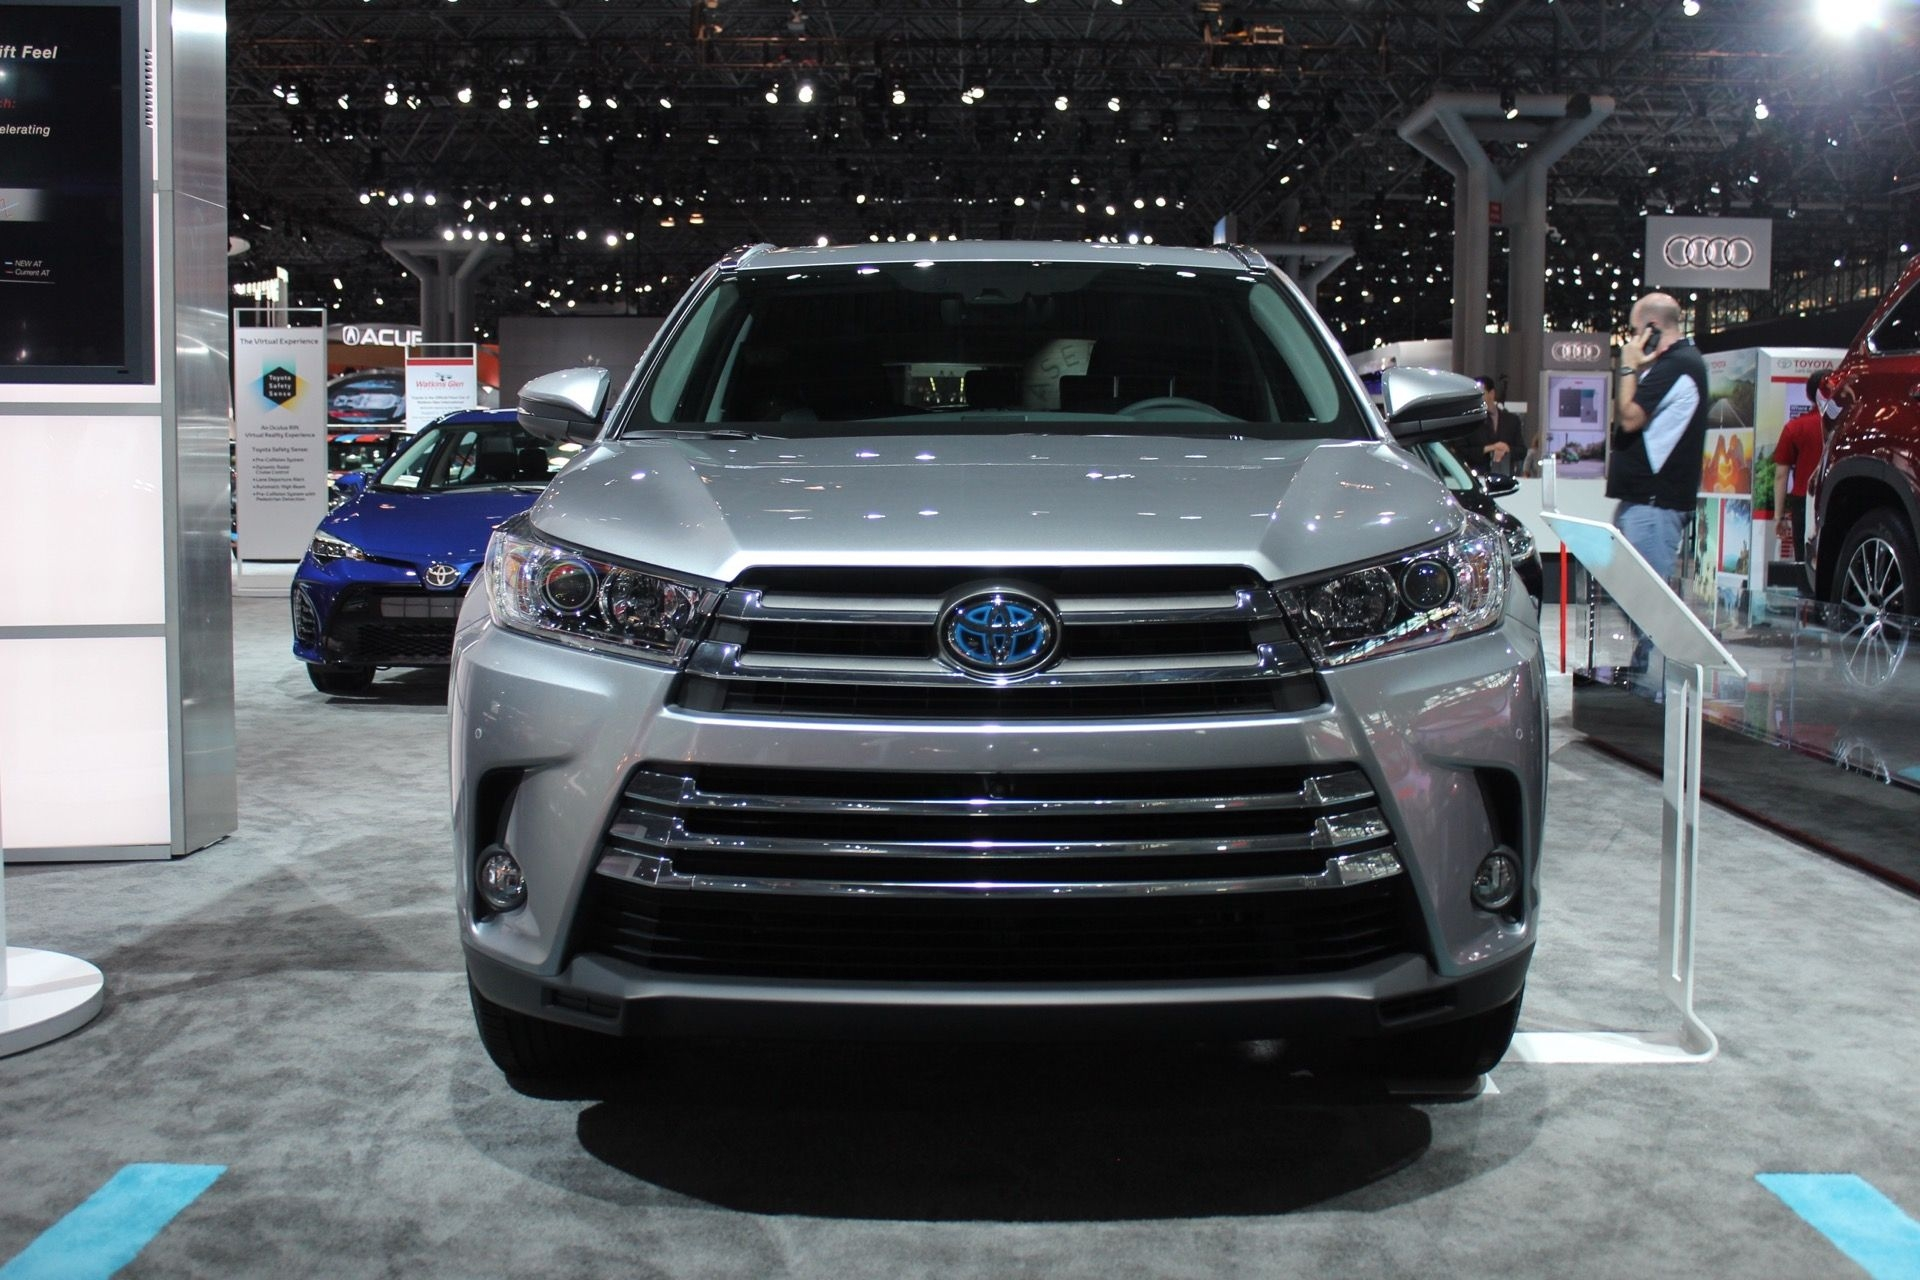 2020 Toyota Highlander Redesign Schedule Years